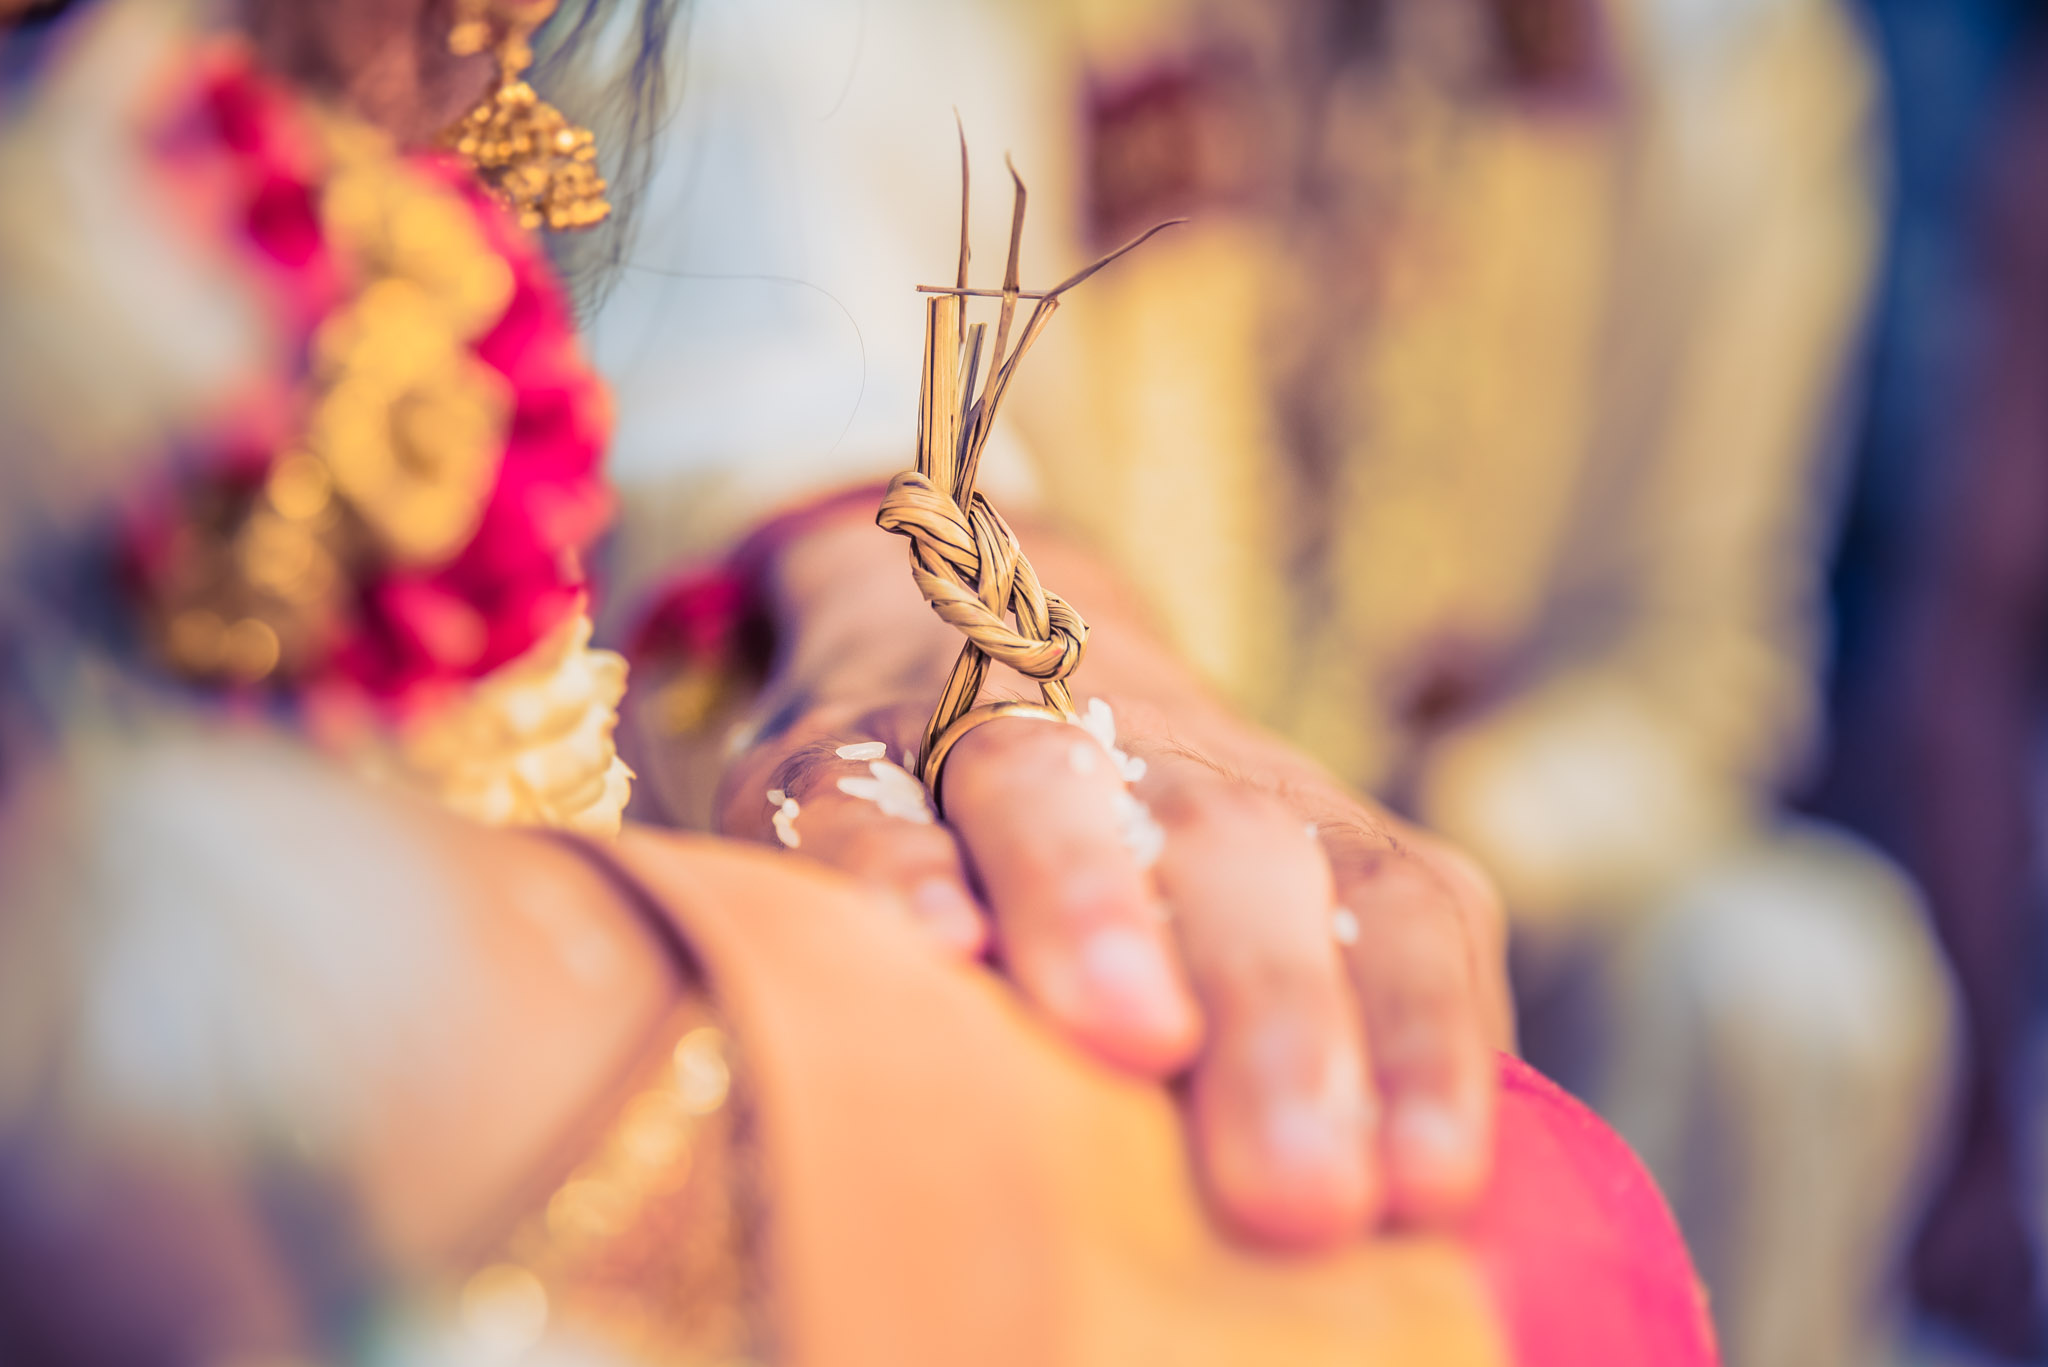 WhatKnot-Candid-Wedding-Photography-Mumbai-Bangalore-174